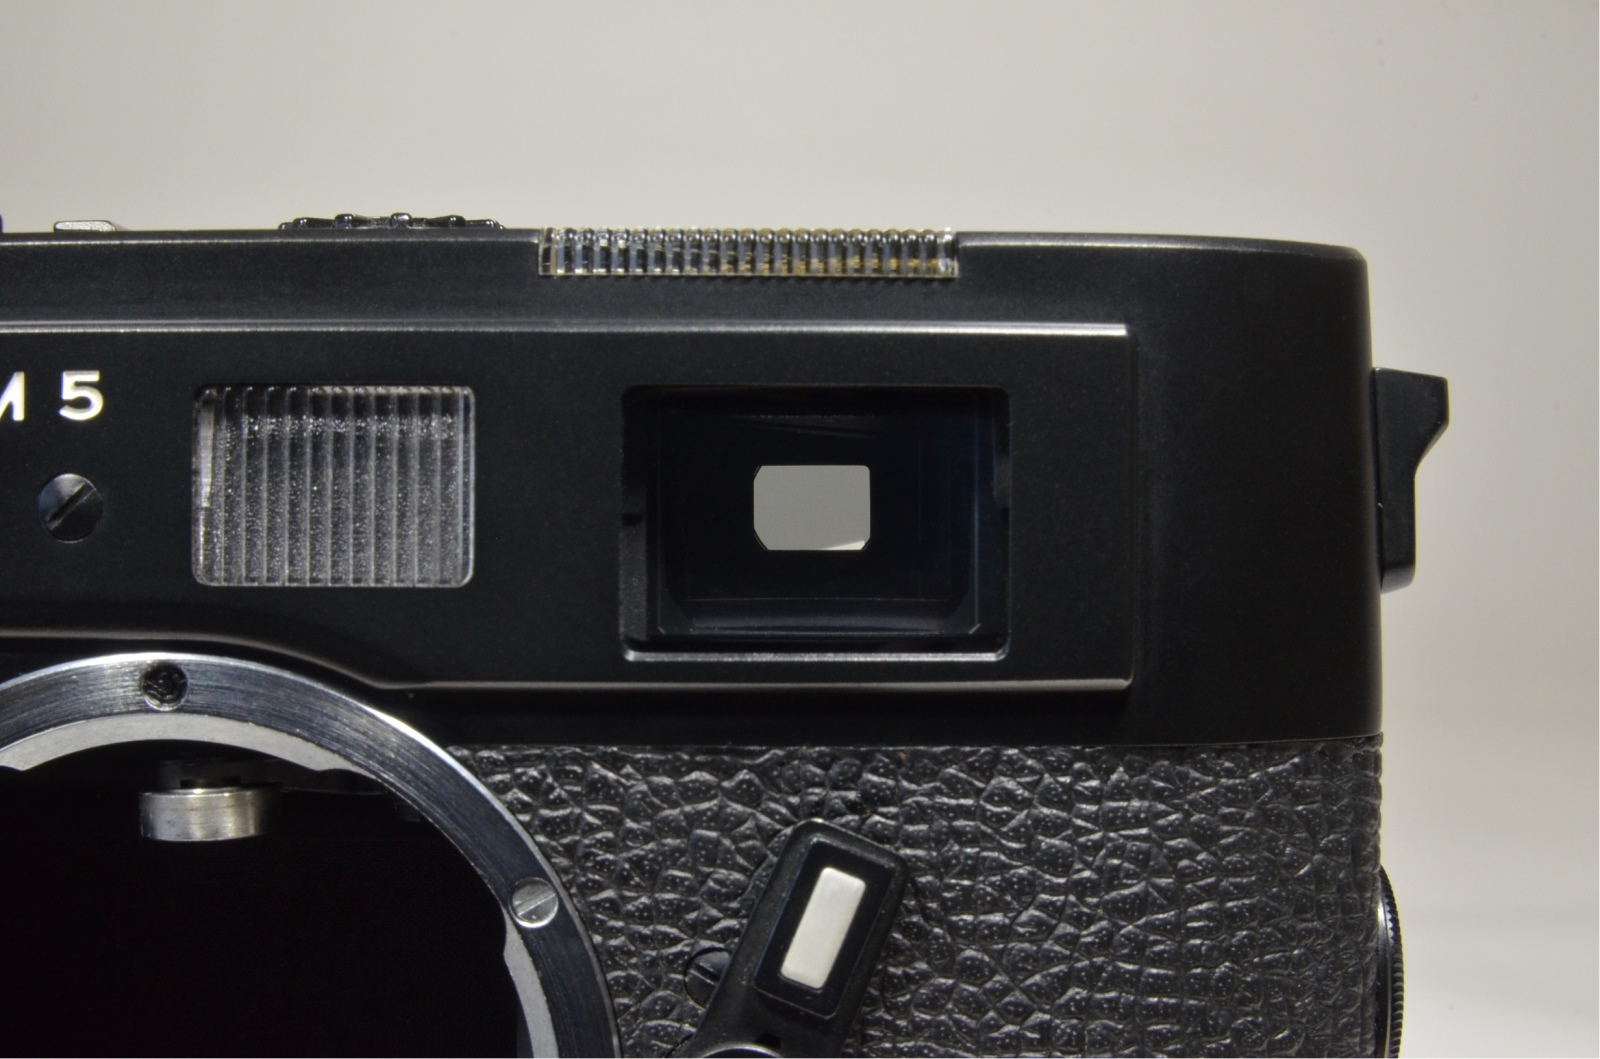 leica m5 black 3 lug serial no.1377846 year 1973 in boxed with strap